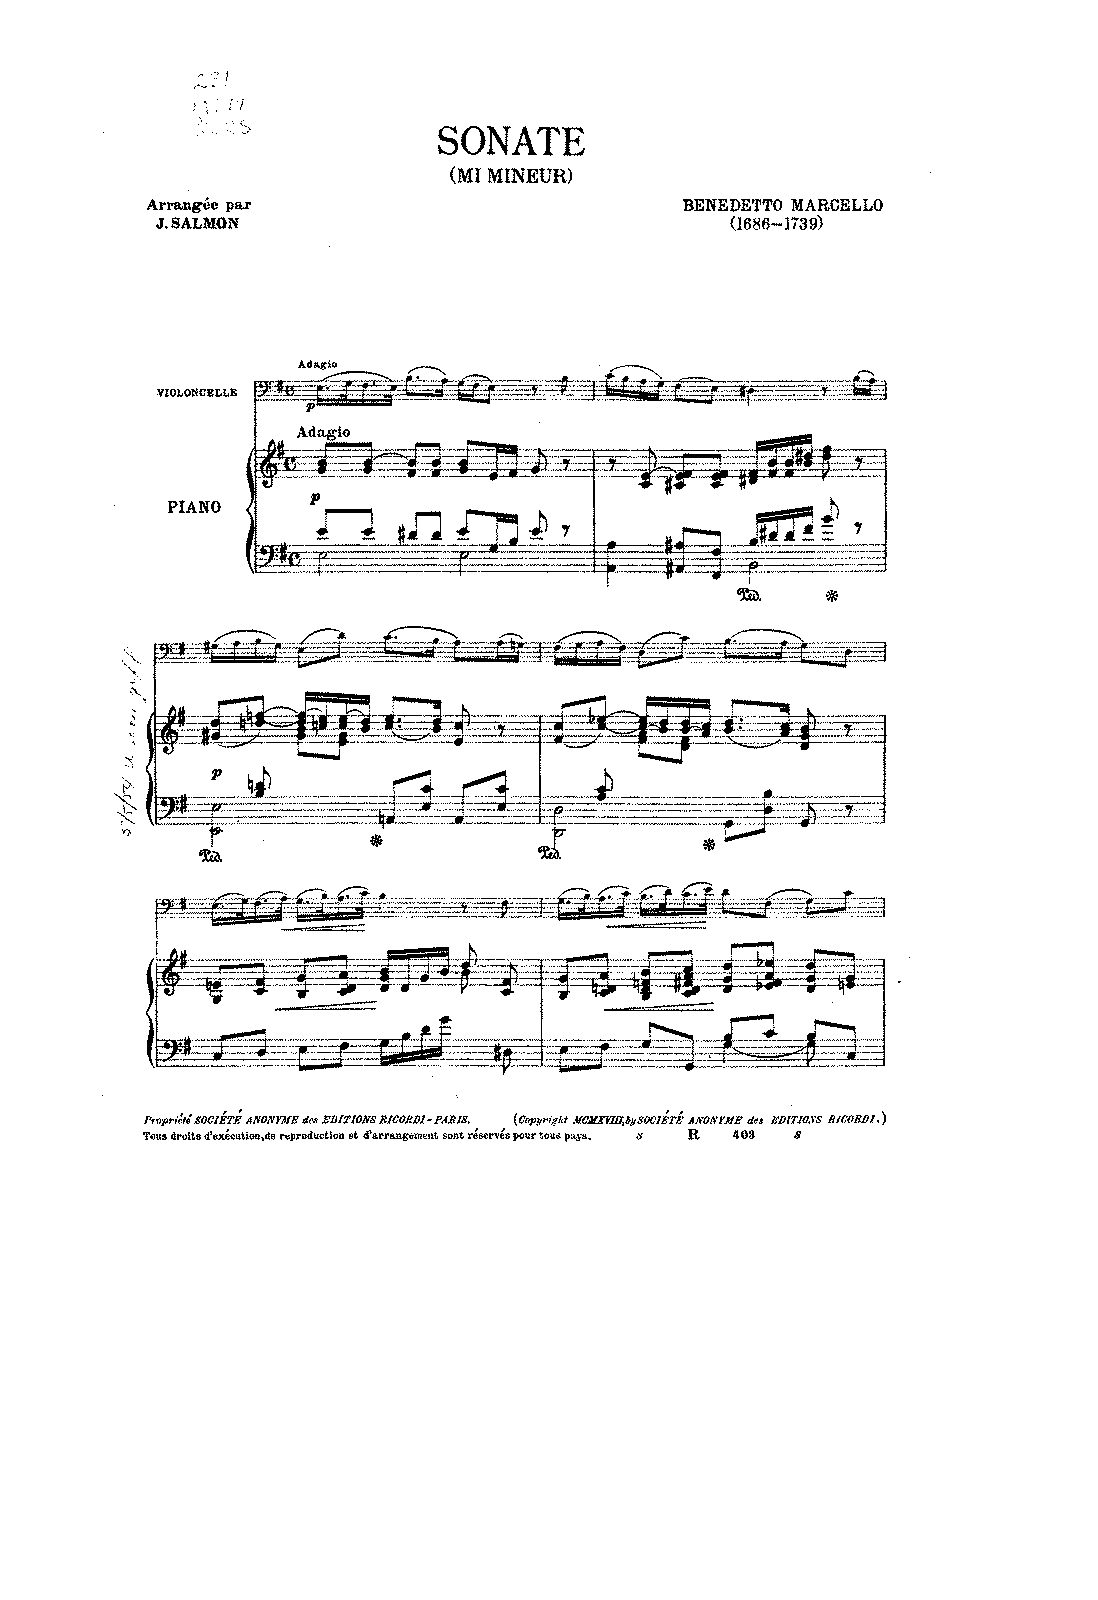 PMLP51302-Marcello - Cello Sonate No2 in E minor Op1 (Salmon) piano score.pdf